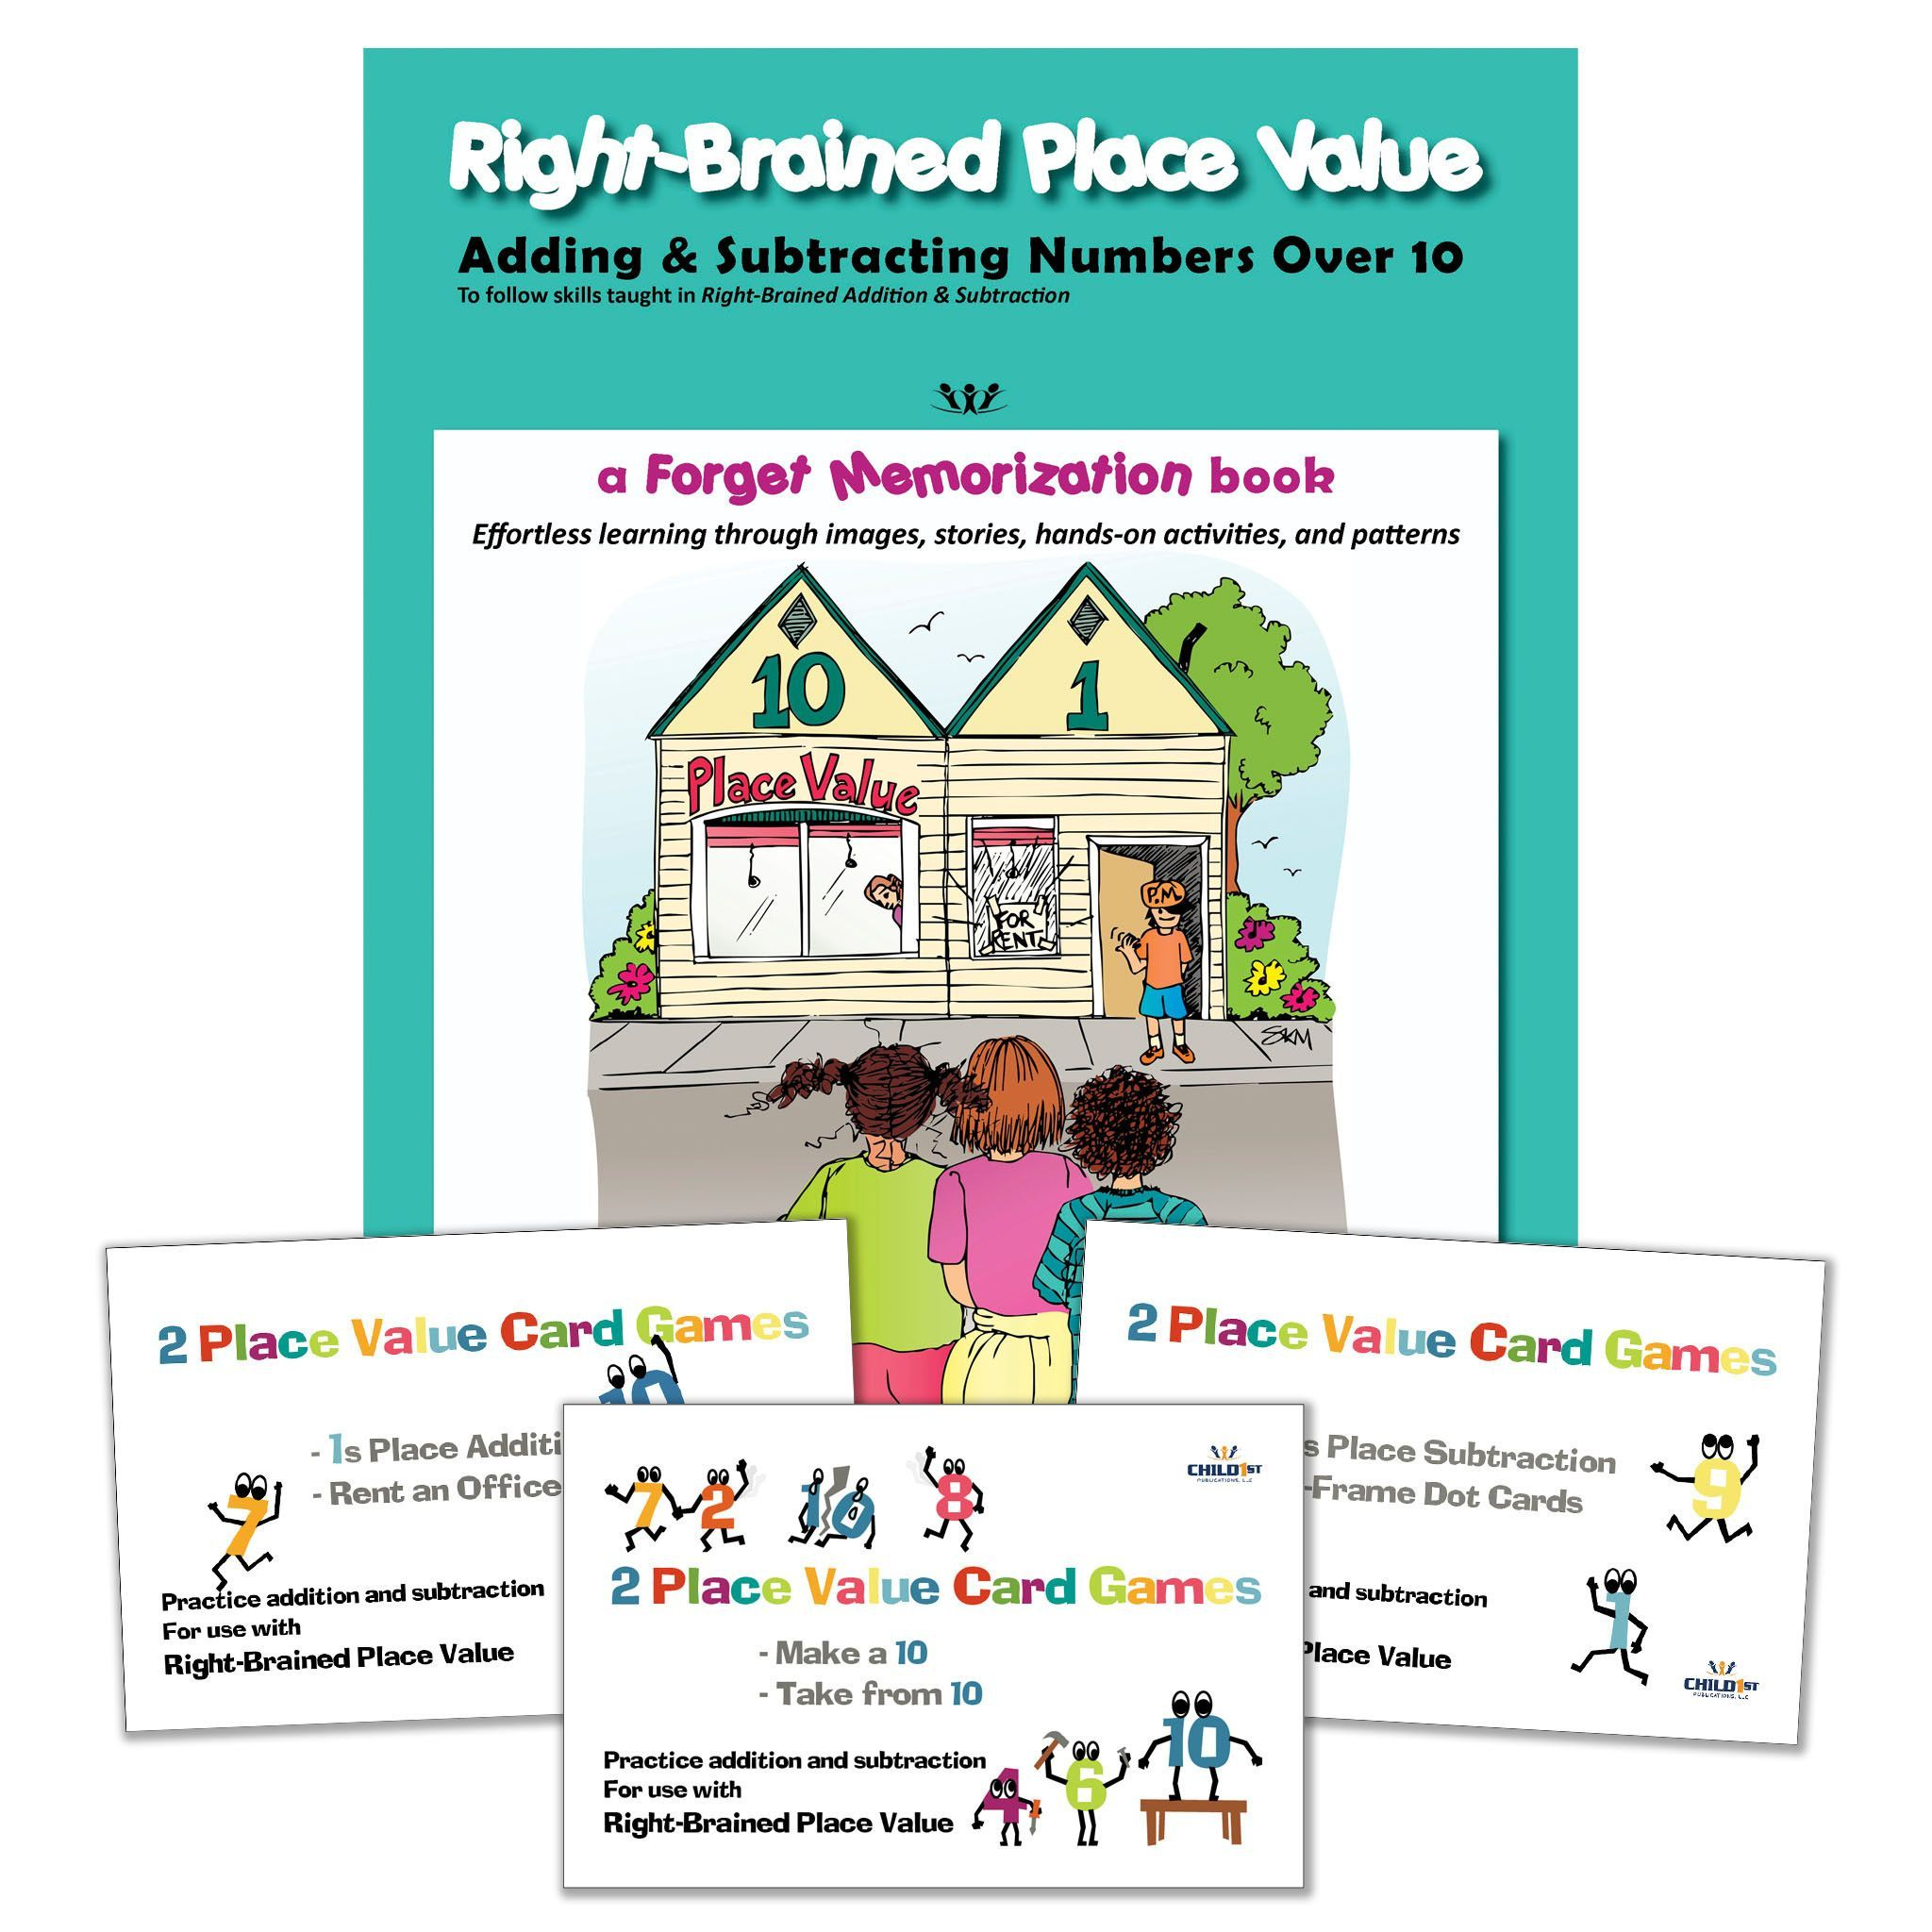 Right-Brained Addition & Subtraction Vol. 2, Book & Games